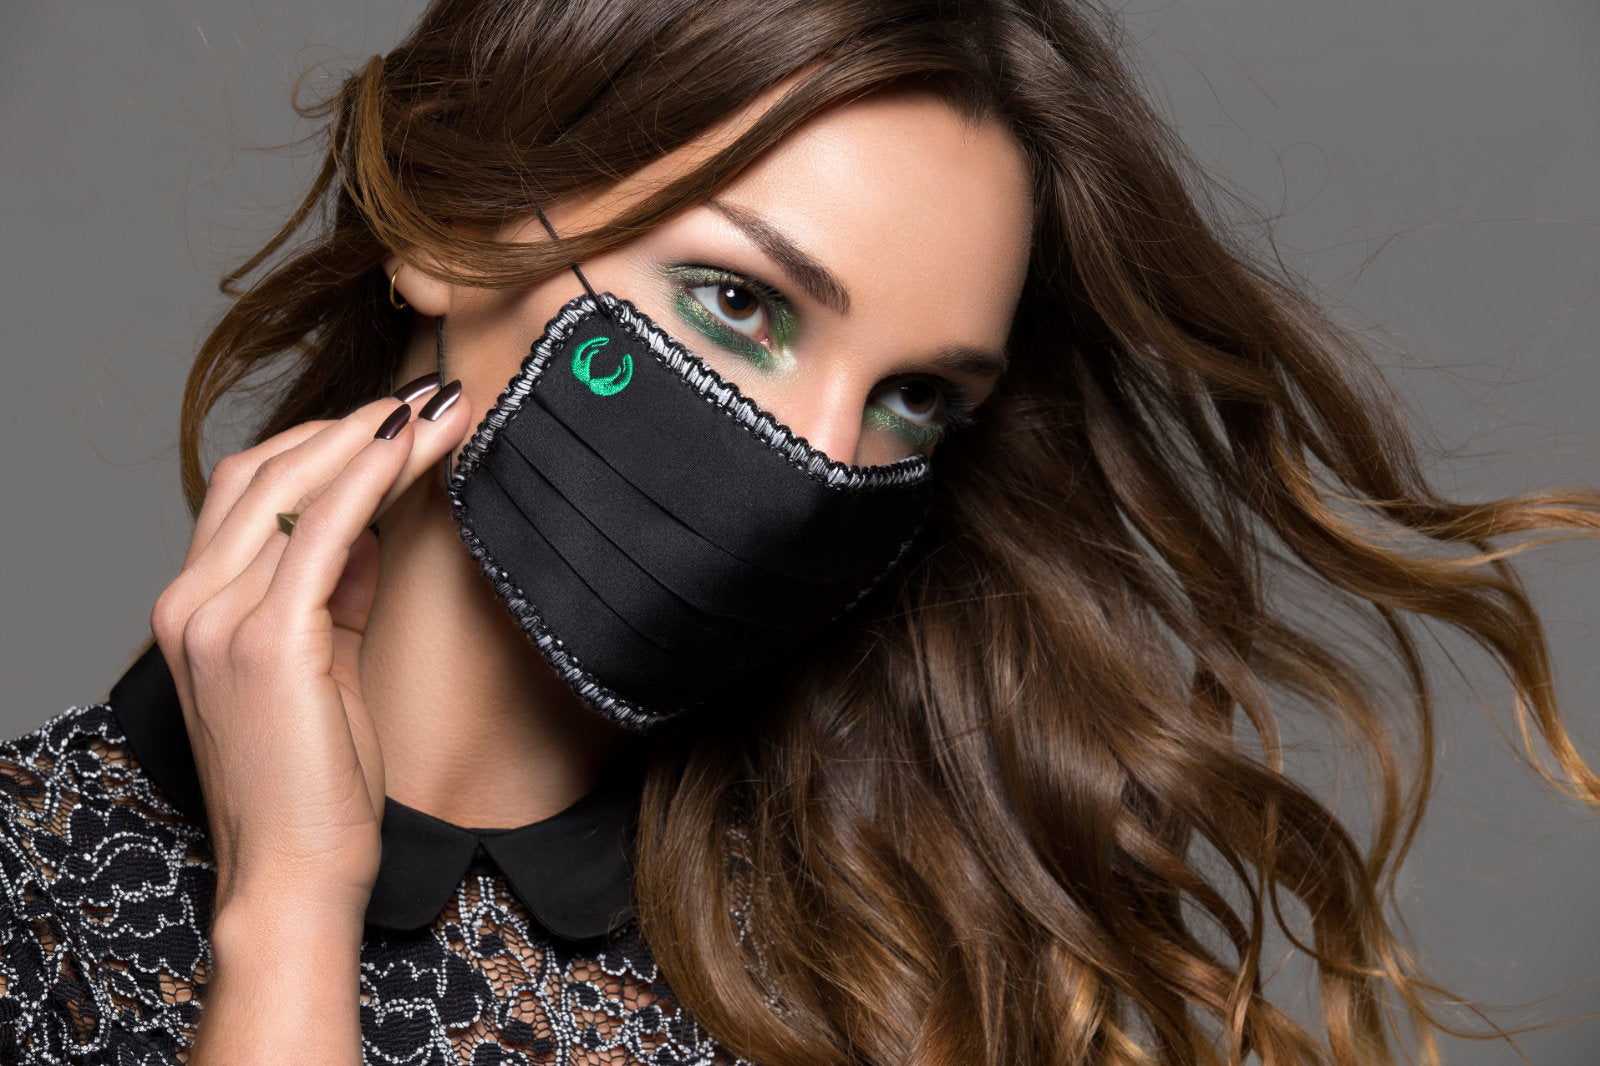 Tallix -  Women's Luxury Face Mask Collection